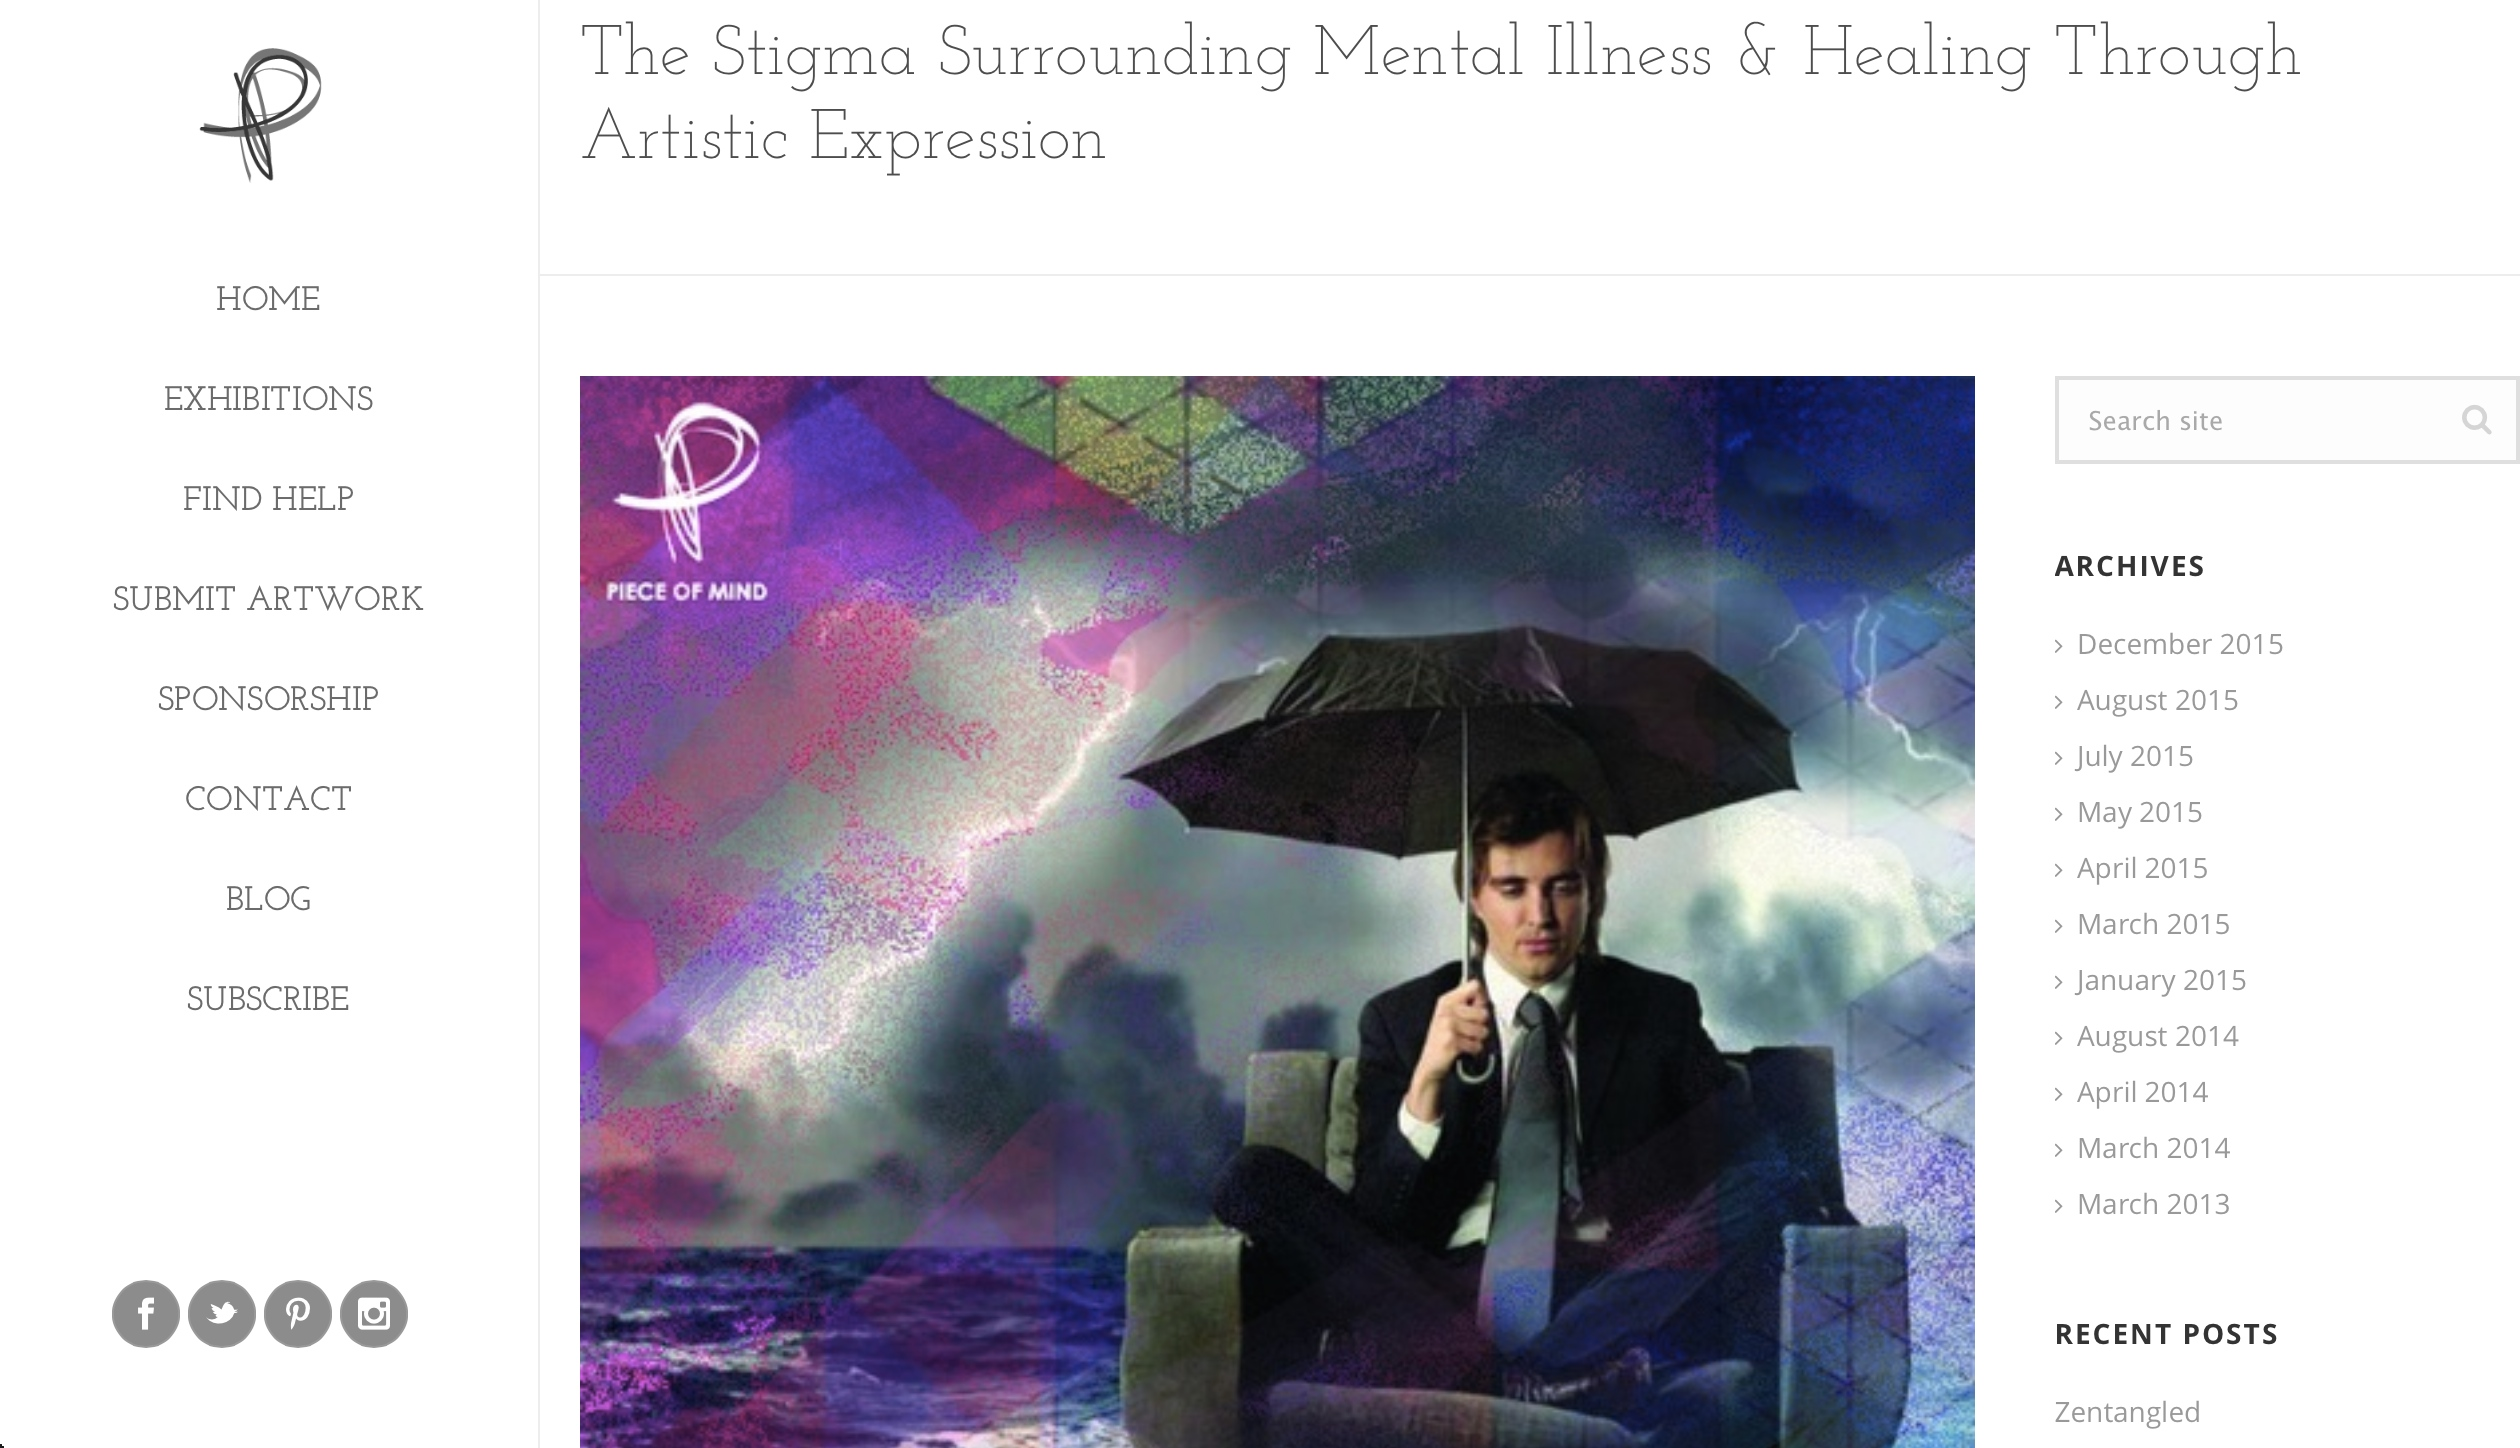 The Stigma Surrounding Mental Illness and Healing Through Artistic Expression